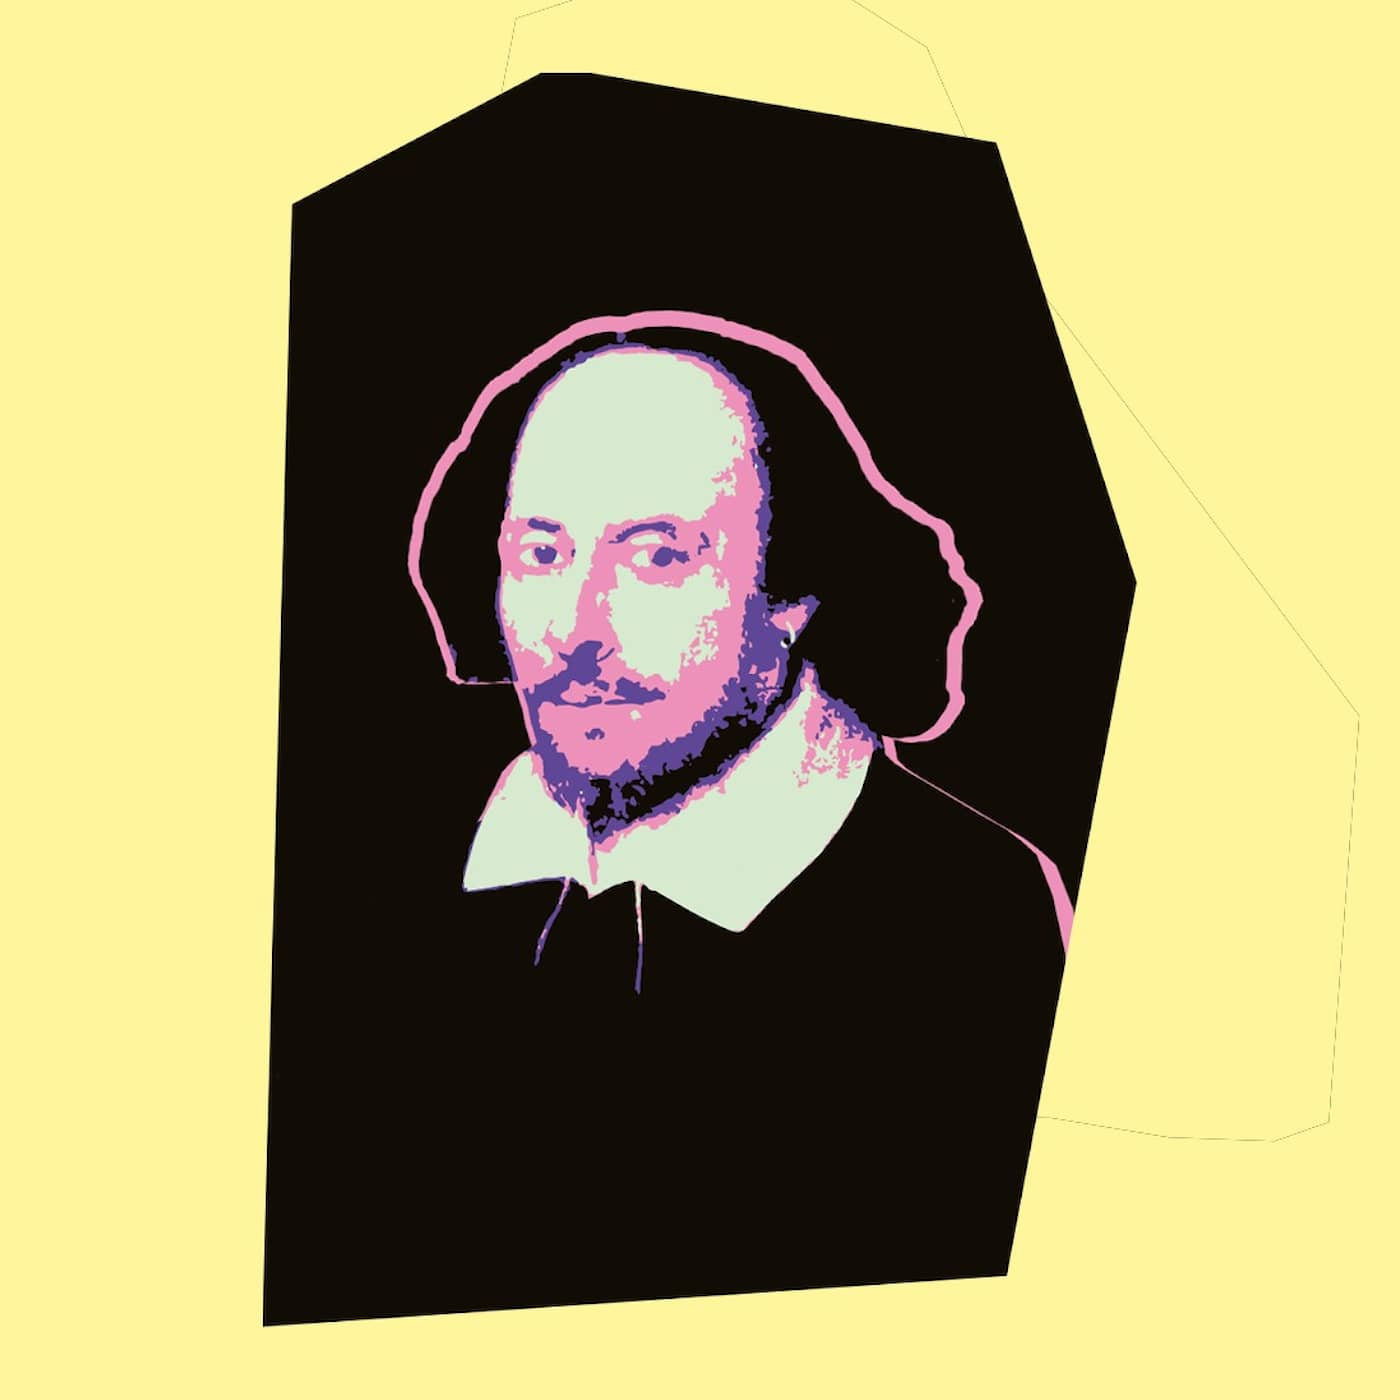 William Shakespeare – legendariskt teatergeni i dramatisk tid